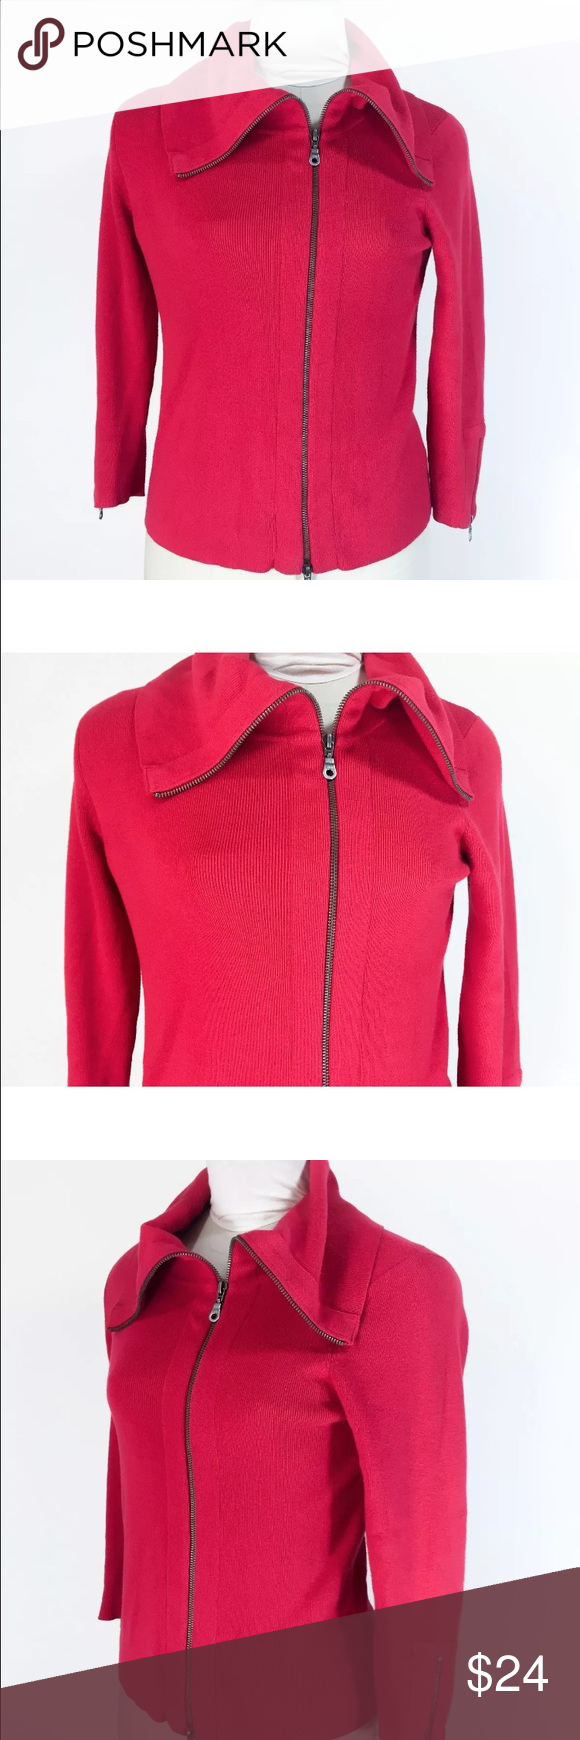 "Cabi Red Sweater Zip It Style #285 Wide Collar Cabi Red Sweater Zip It Style #285 Wide Collar Cardigan Cotton Rayon Sz S  Measurements- Taken Flat  Pit to pit (doubled)- 36""  Length- Top of Shoulder to Bottom Hem- 23""   Sleeve length- Shoulder Seam to Cuff- 20""   Width at hem (doubled)- 38""  Please check your measurements before purchasing!   Bin#22 CAbi Sweaters Cardigans"